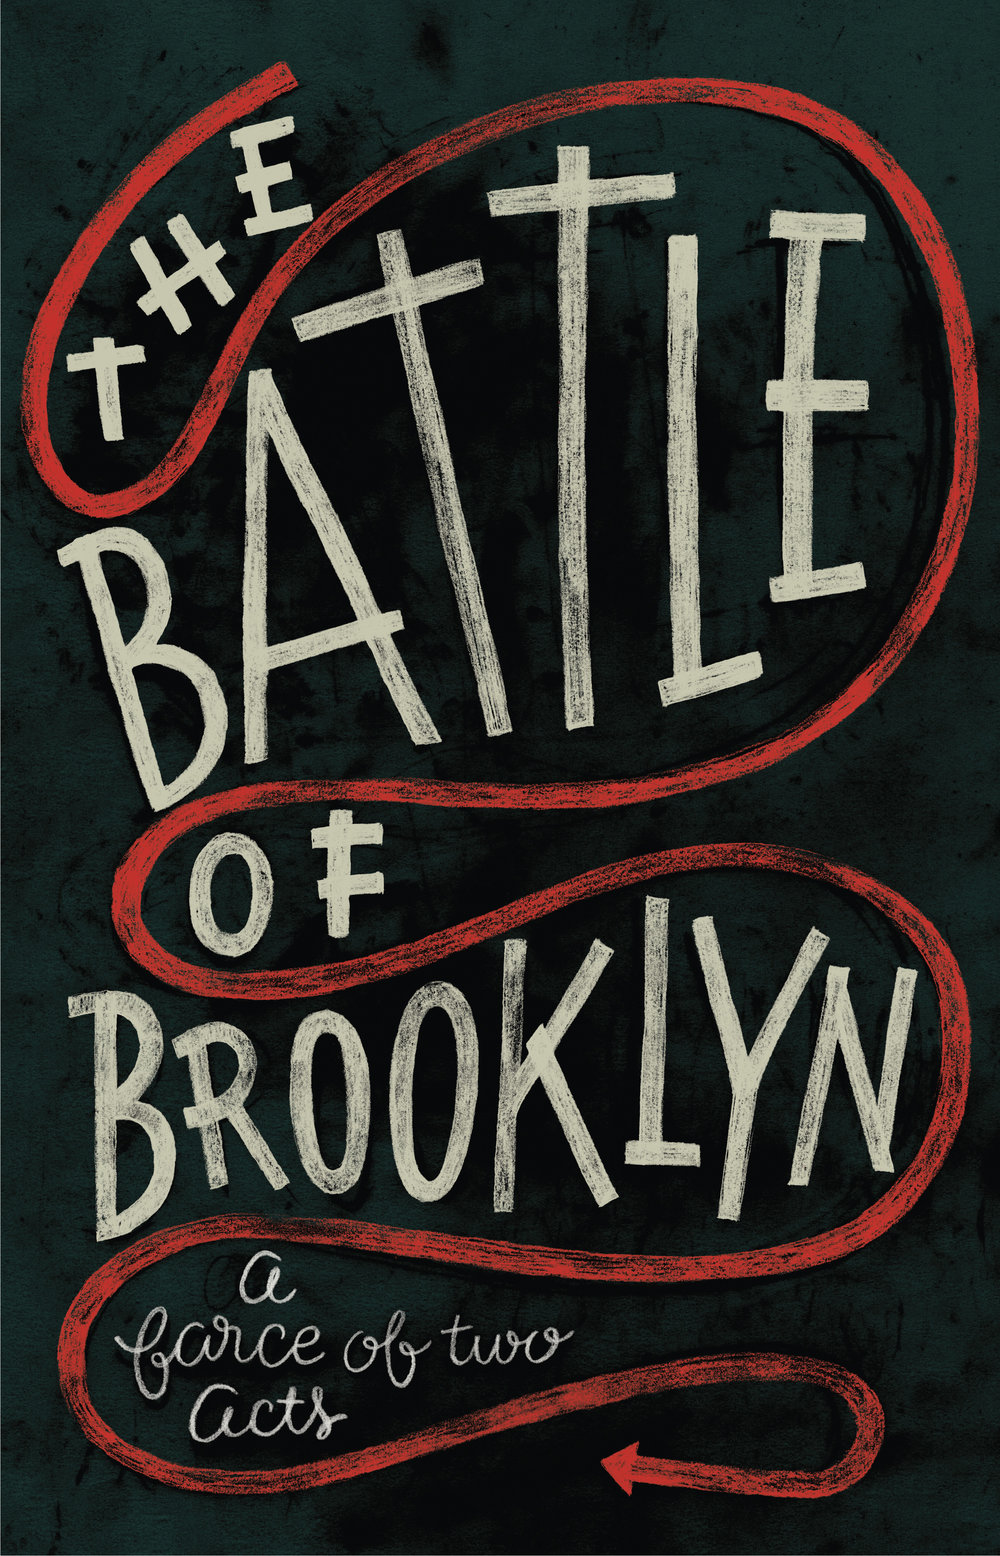 Banner Lettering and Design for the New York Historical Society's Exhibition The Battle of Brooklyn